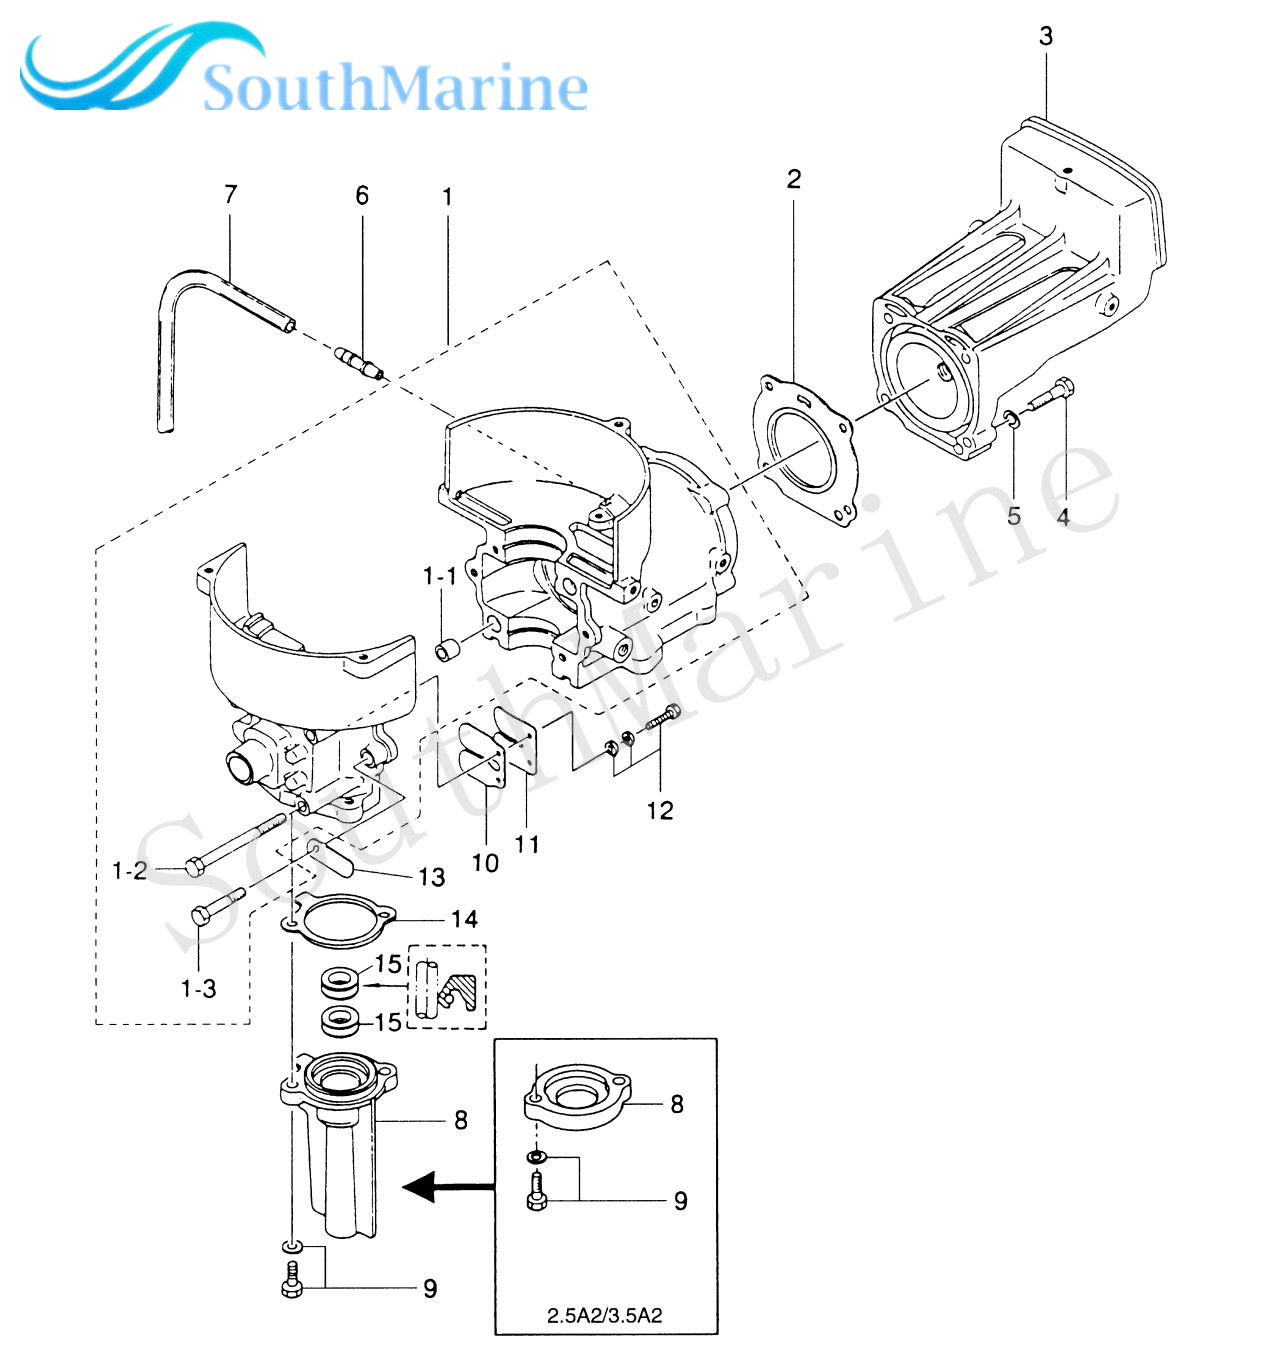 ... Nissan Outboard Parts Diagrams 8 HP Nissan Outboard Parts Wiring